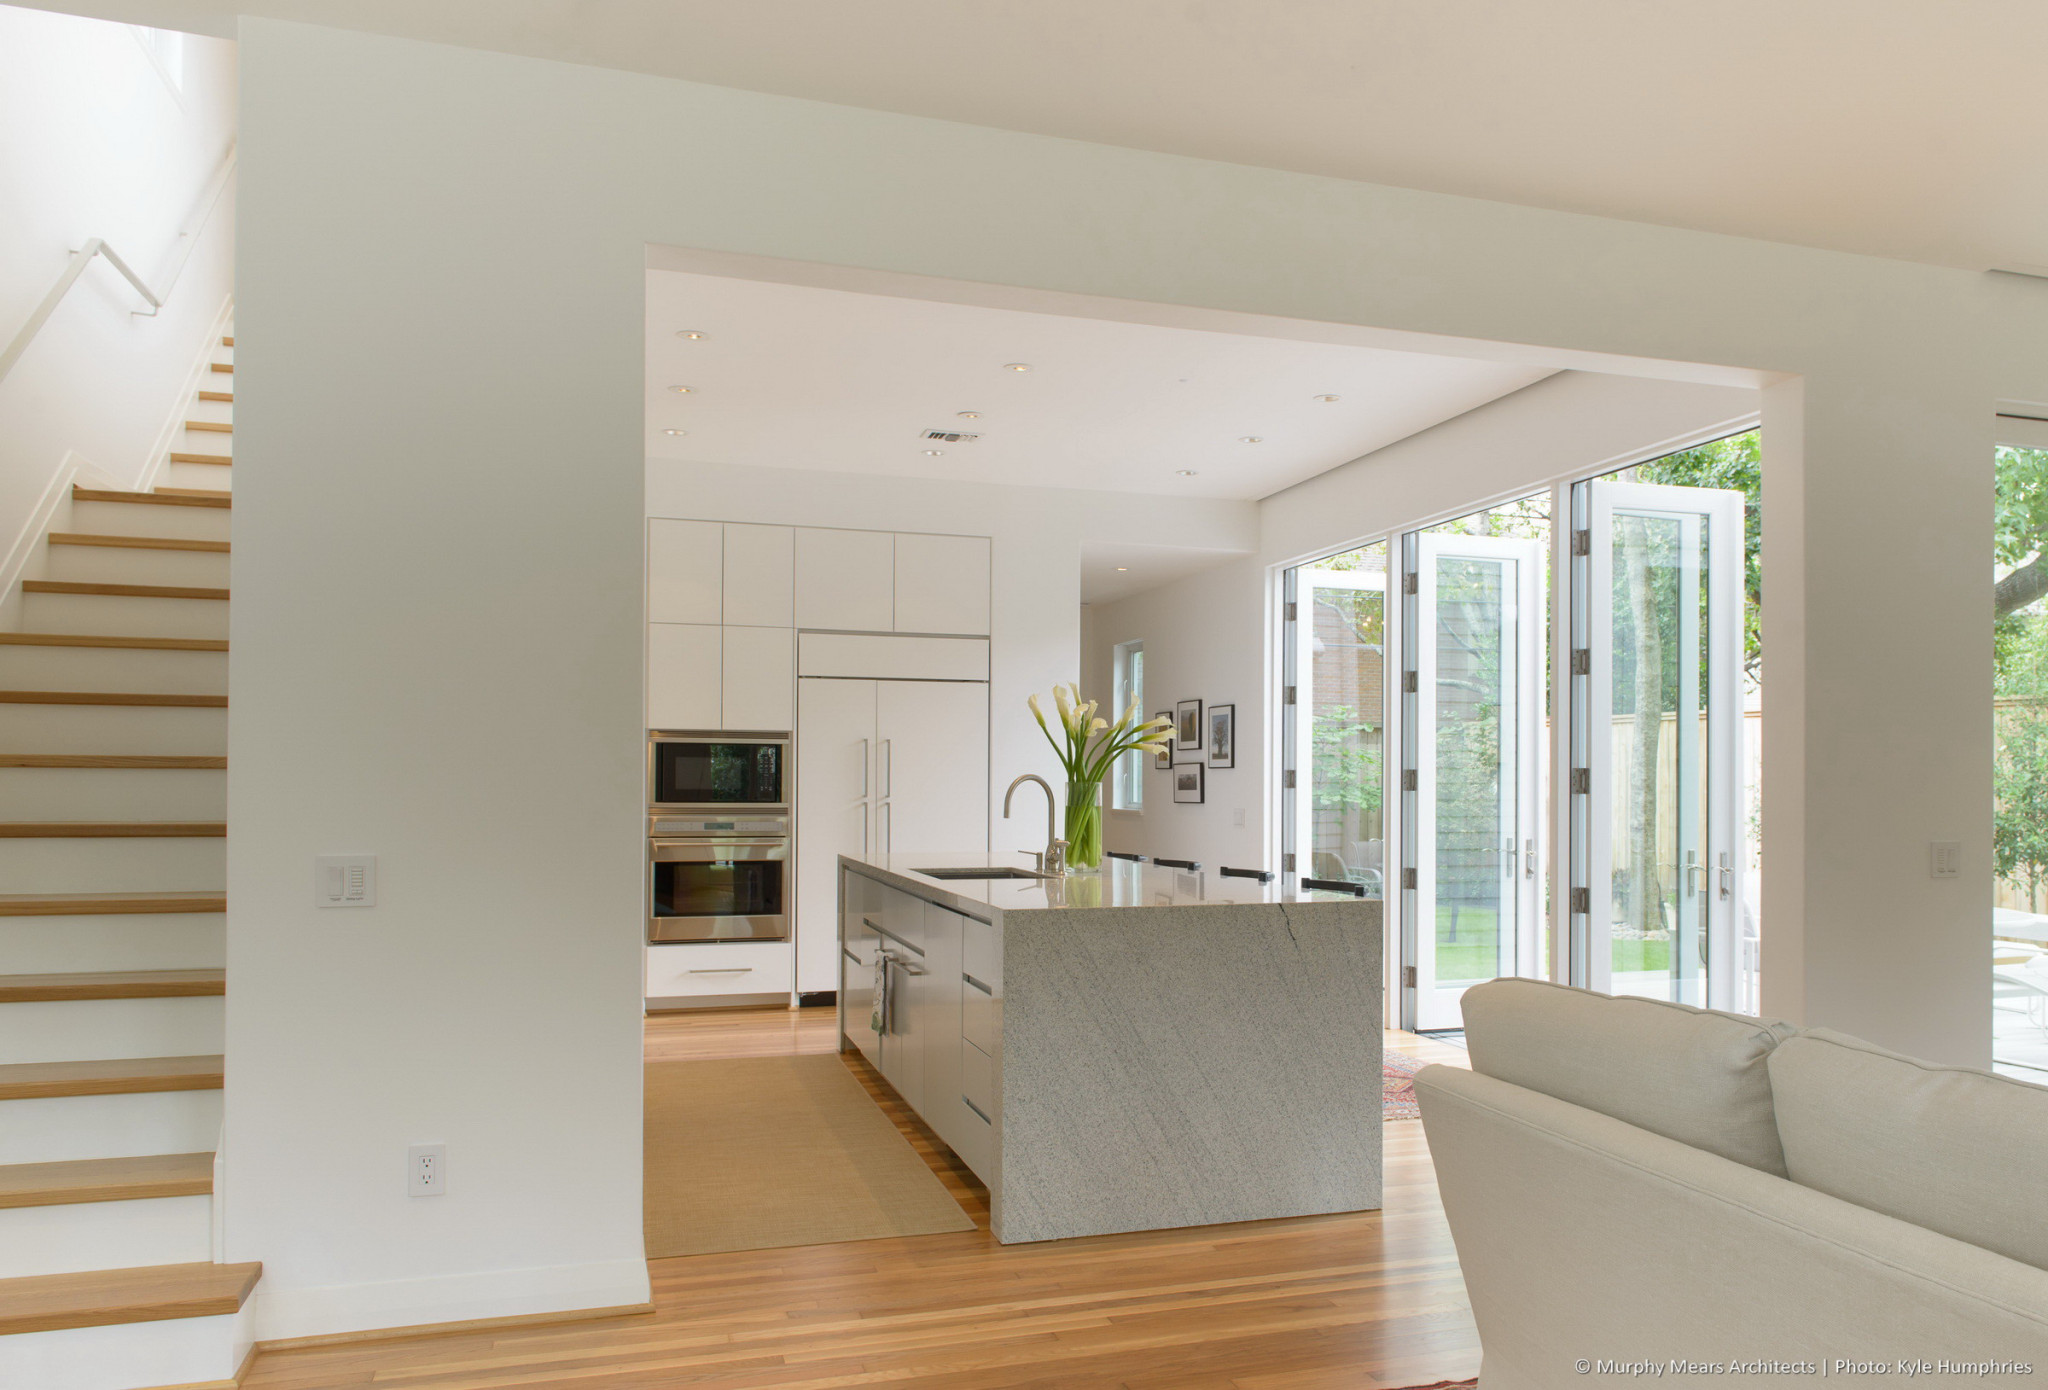 kitchen viewed from dining area with doors open to back yard and stair rising behind